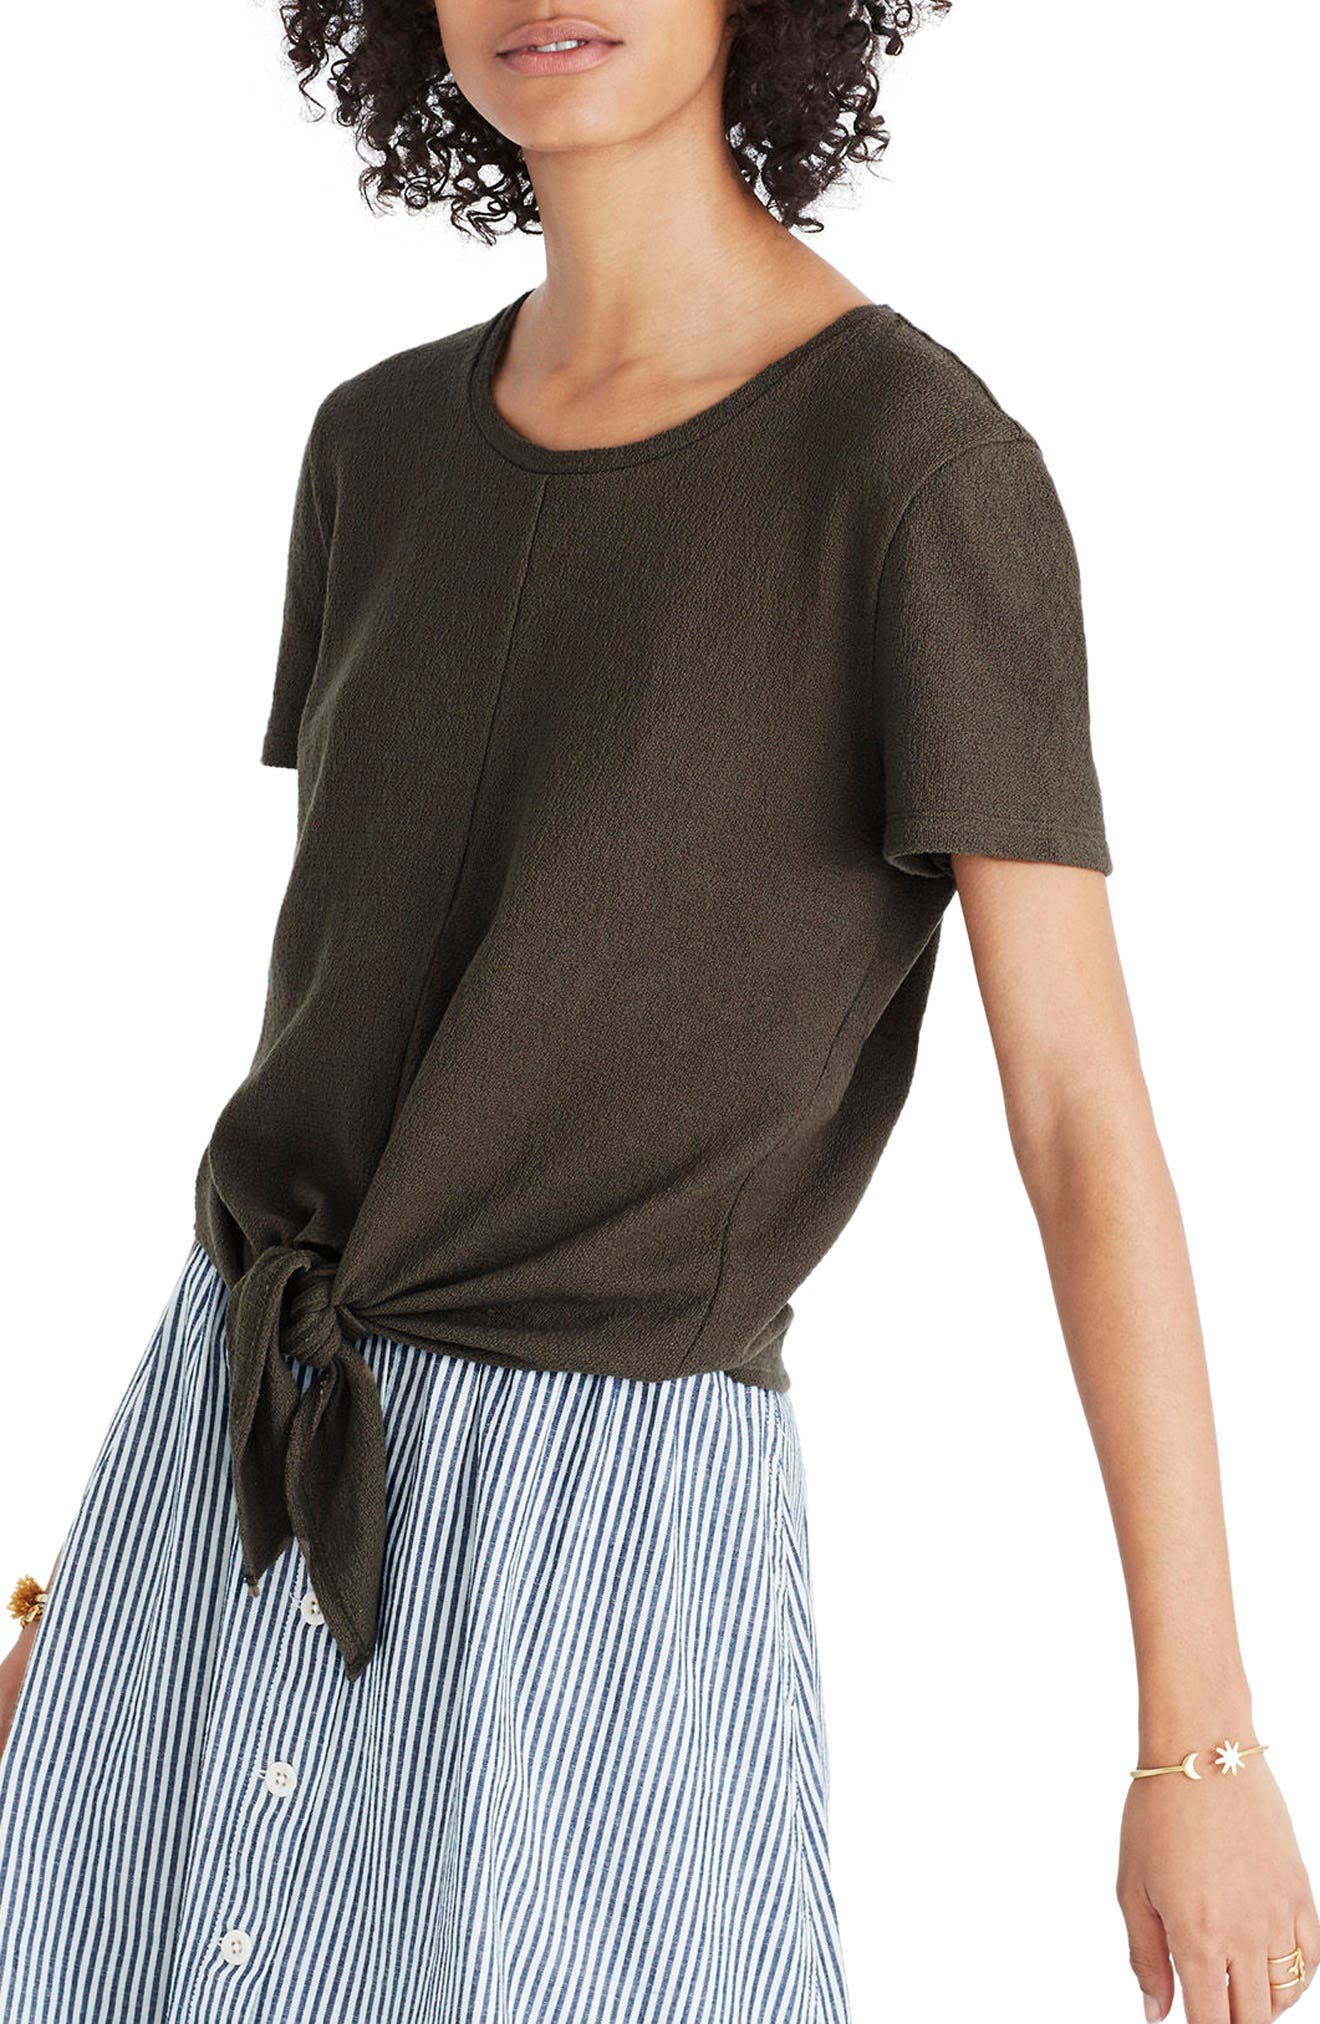 MADEWELL,                             Modern Tie Front Tee,                             Main thumbnail 1, color,                             300